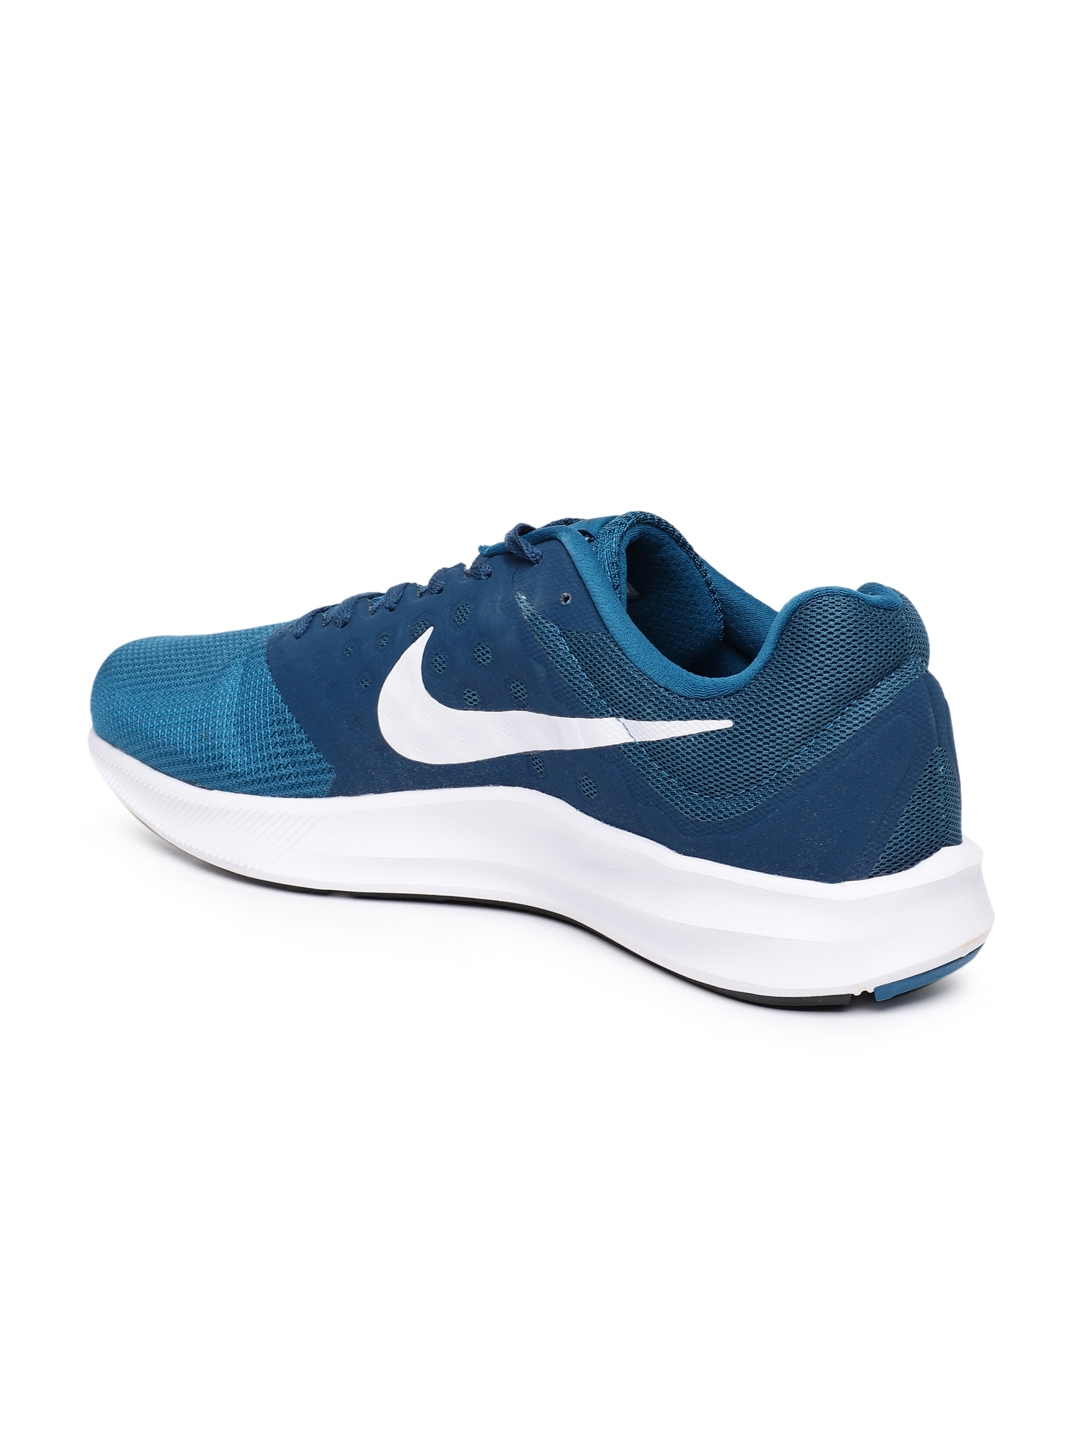 198232f46f5f Buy Nike Men Blue Downshifter 7 Running Shoes - Sports Shoes for Men ...